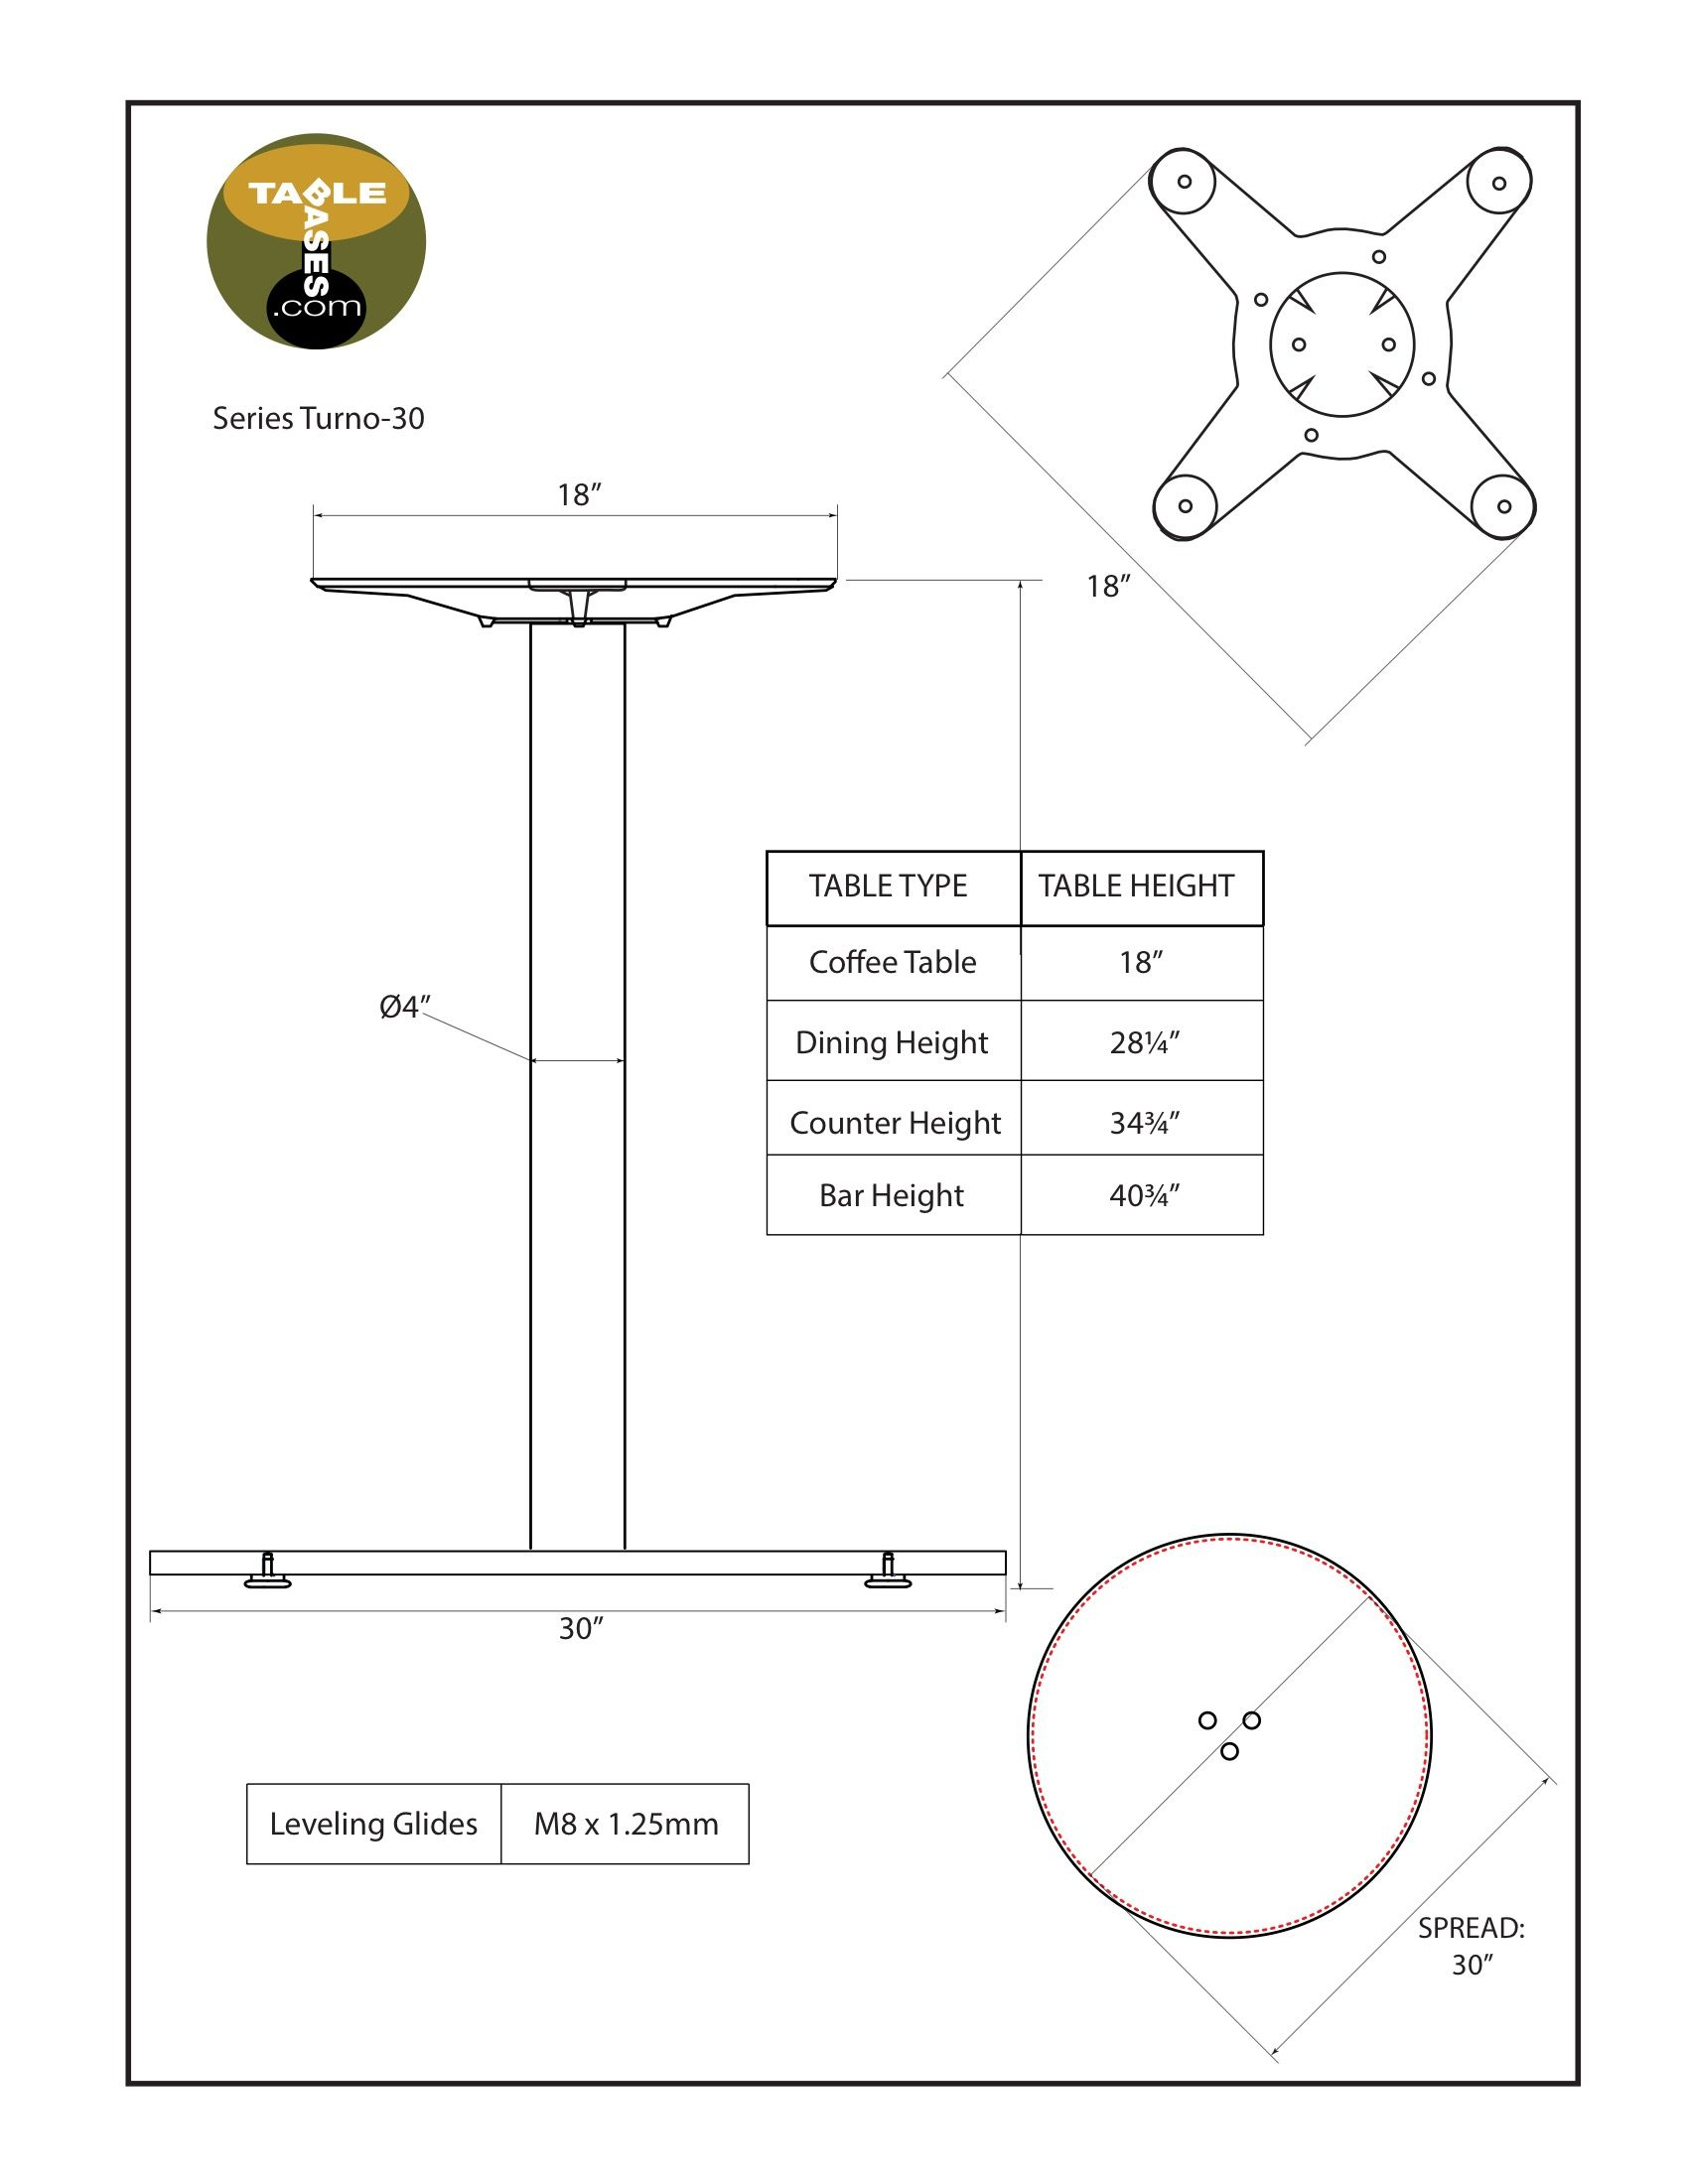 Turno-30 Table Base Specifications